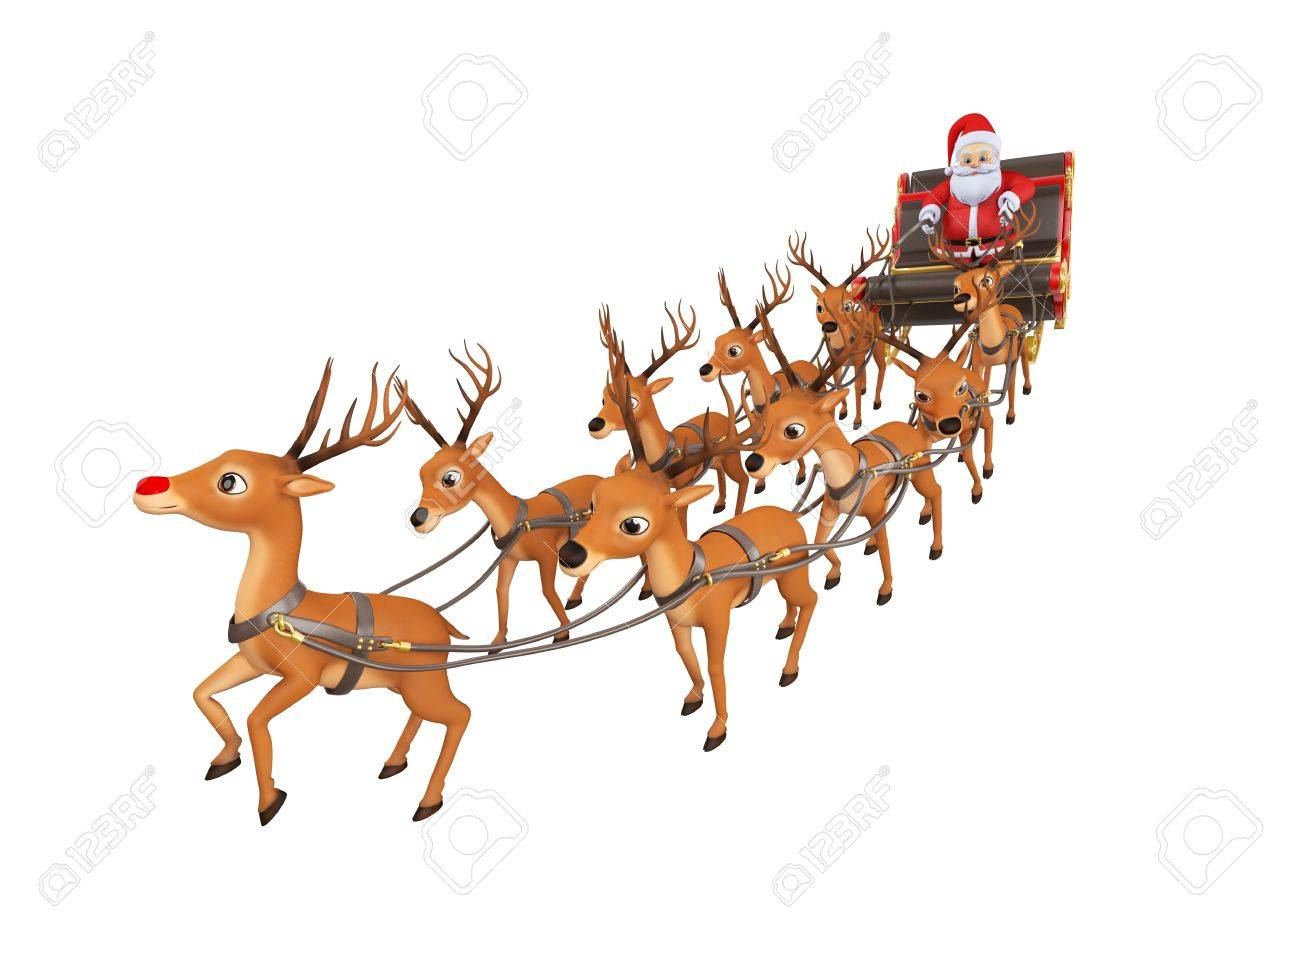 1300x975 3d Rendered Illustration Of Santa With His Sleigh Stock Photo